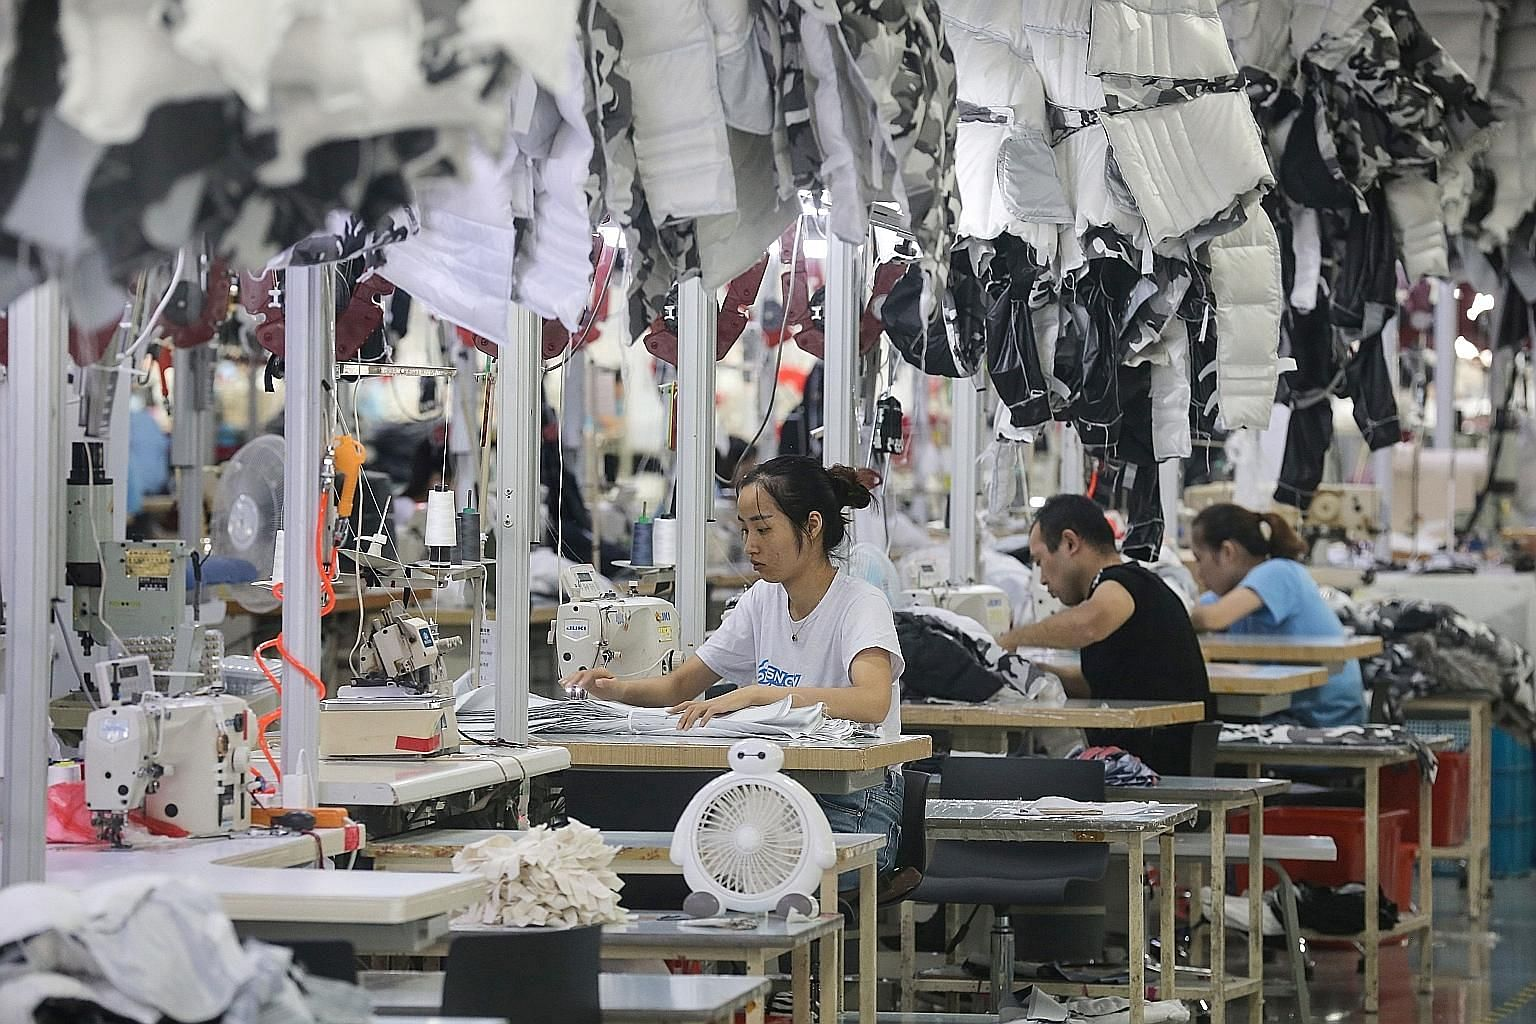 Employees producing down coats at a clothing factory in Nantong, China. China's economic growth has been hit by soft factory production amid a bruising Sino-US trade war. PHOTO: AGENCE FRANCE-PRESSE